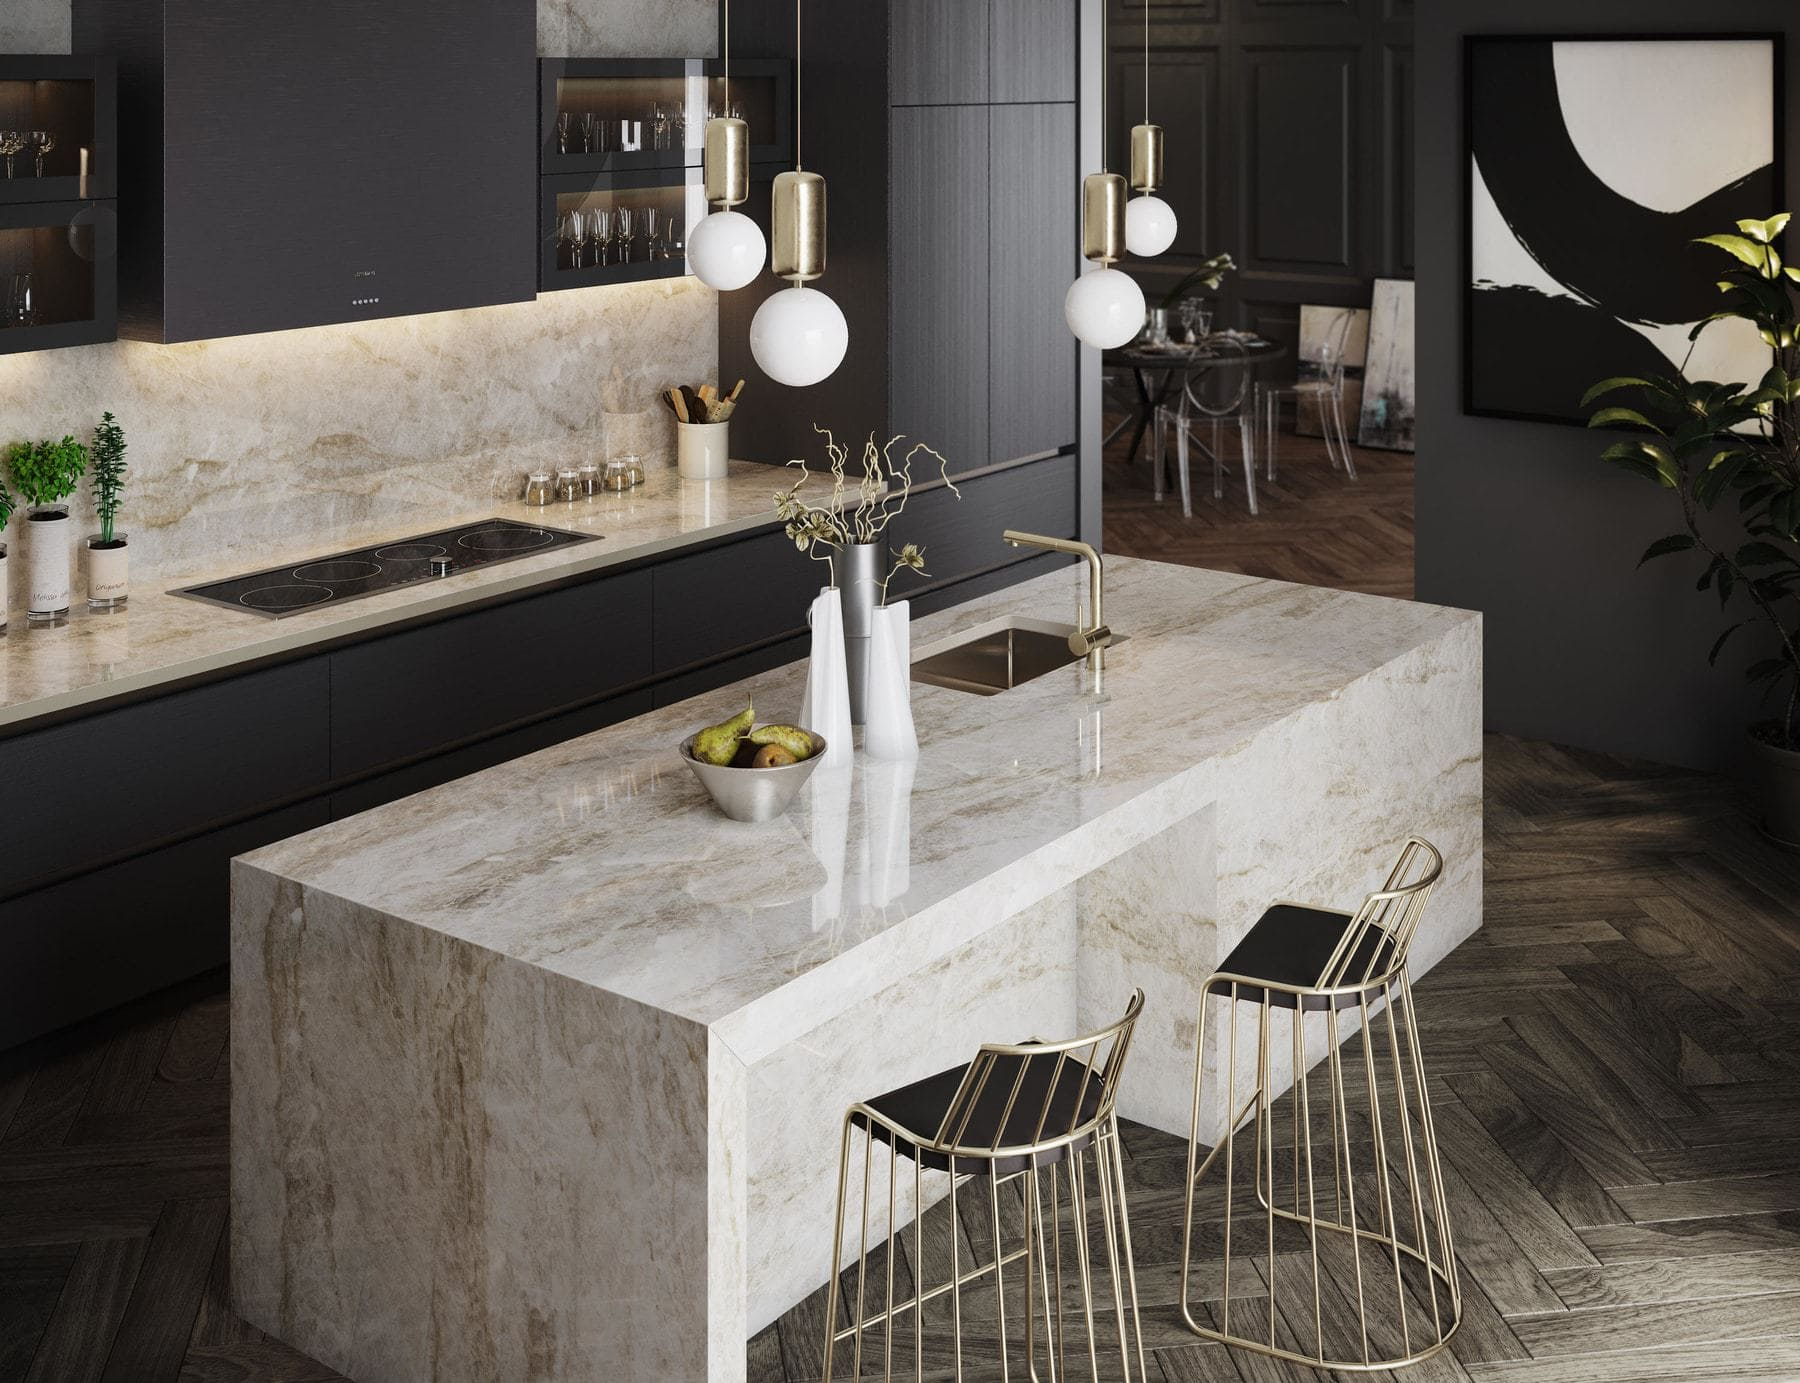 dekton arga countertop finish is used in the parklane's rustic chic finish package by eggersmann